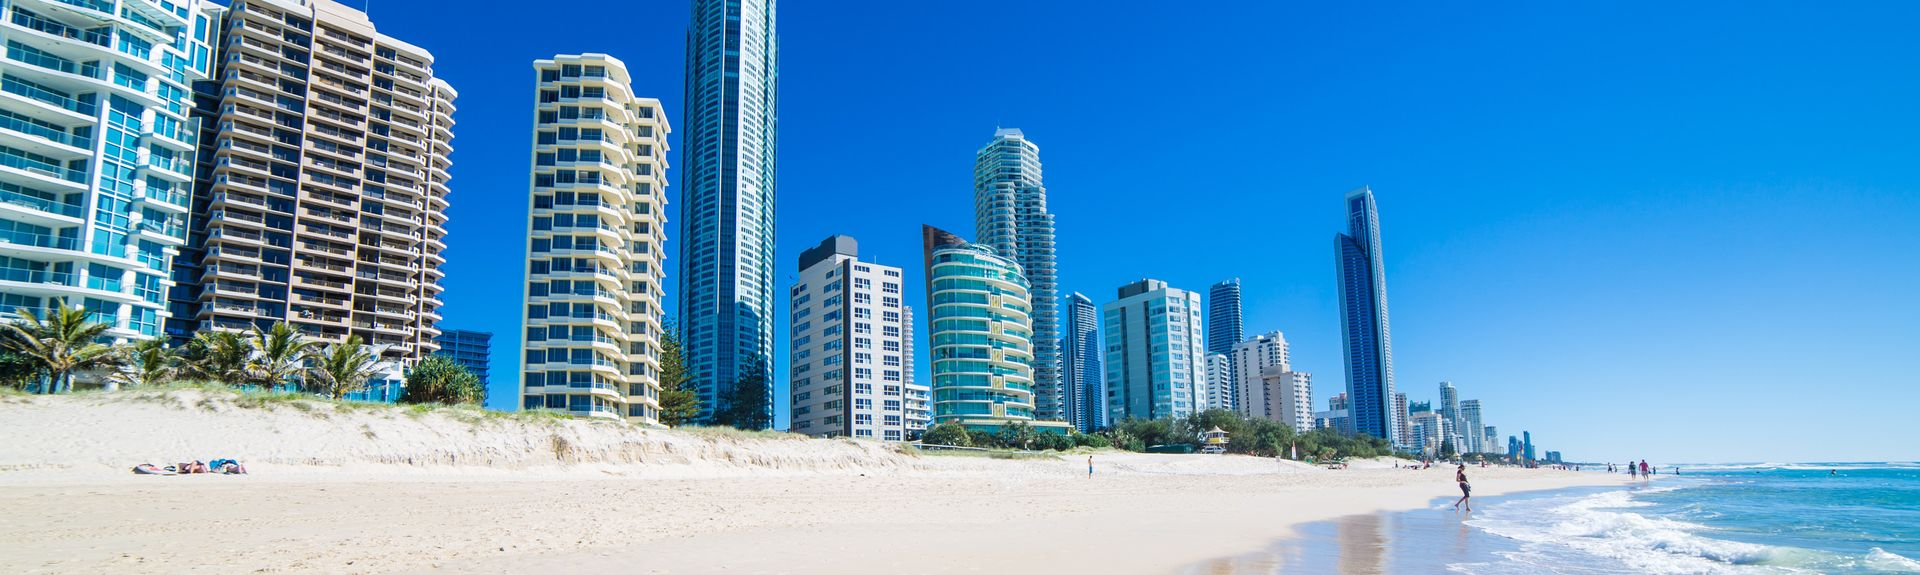 Surfers Paradise, Gold Coast, Queensland, Australien